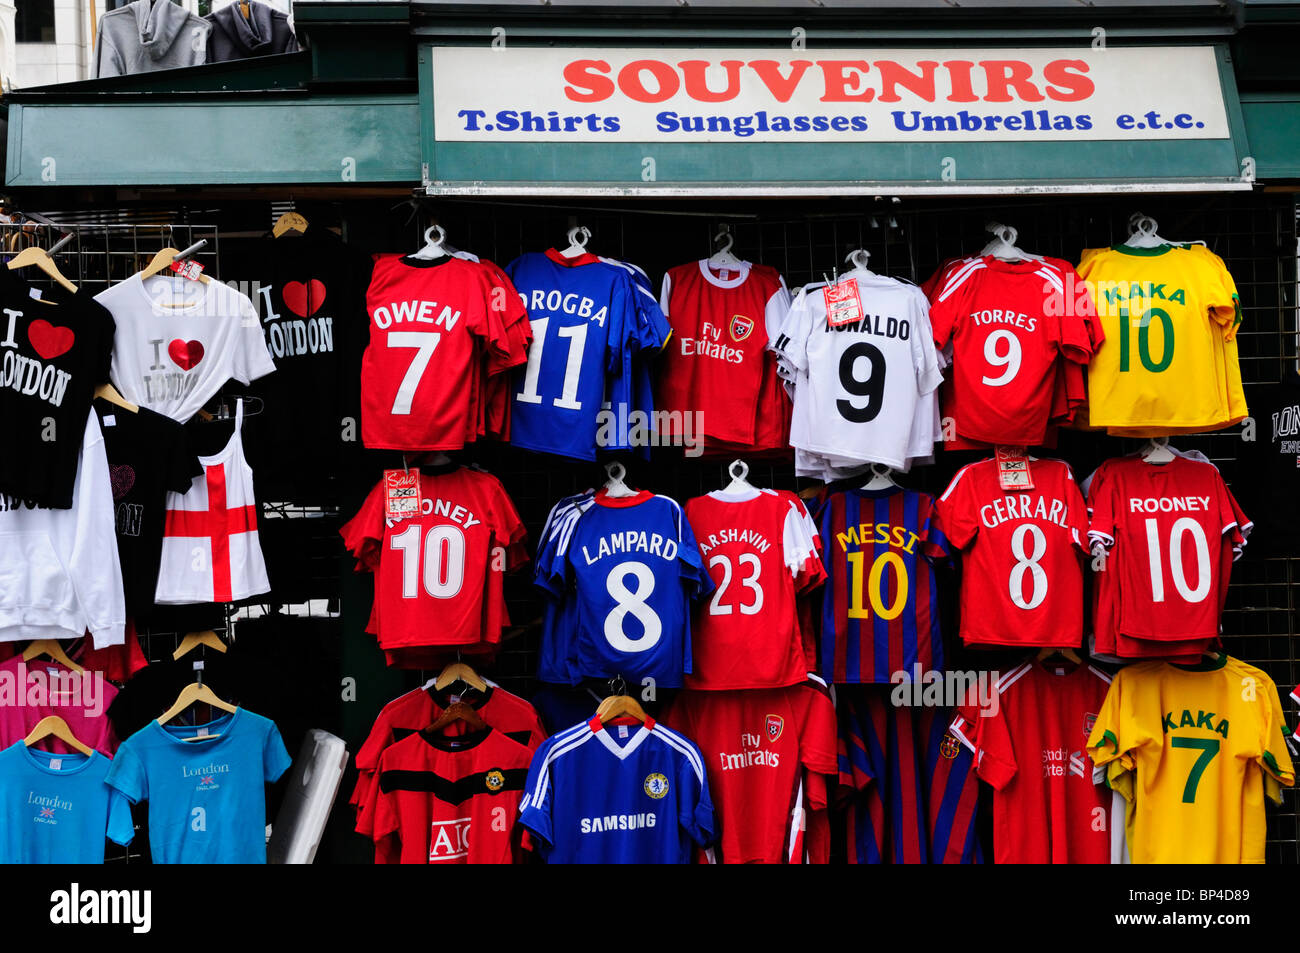 buy online 77a5a 979c7 Souvenir-Shop mit Fußball Trikots, Oxford Street, London ...